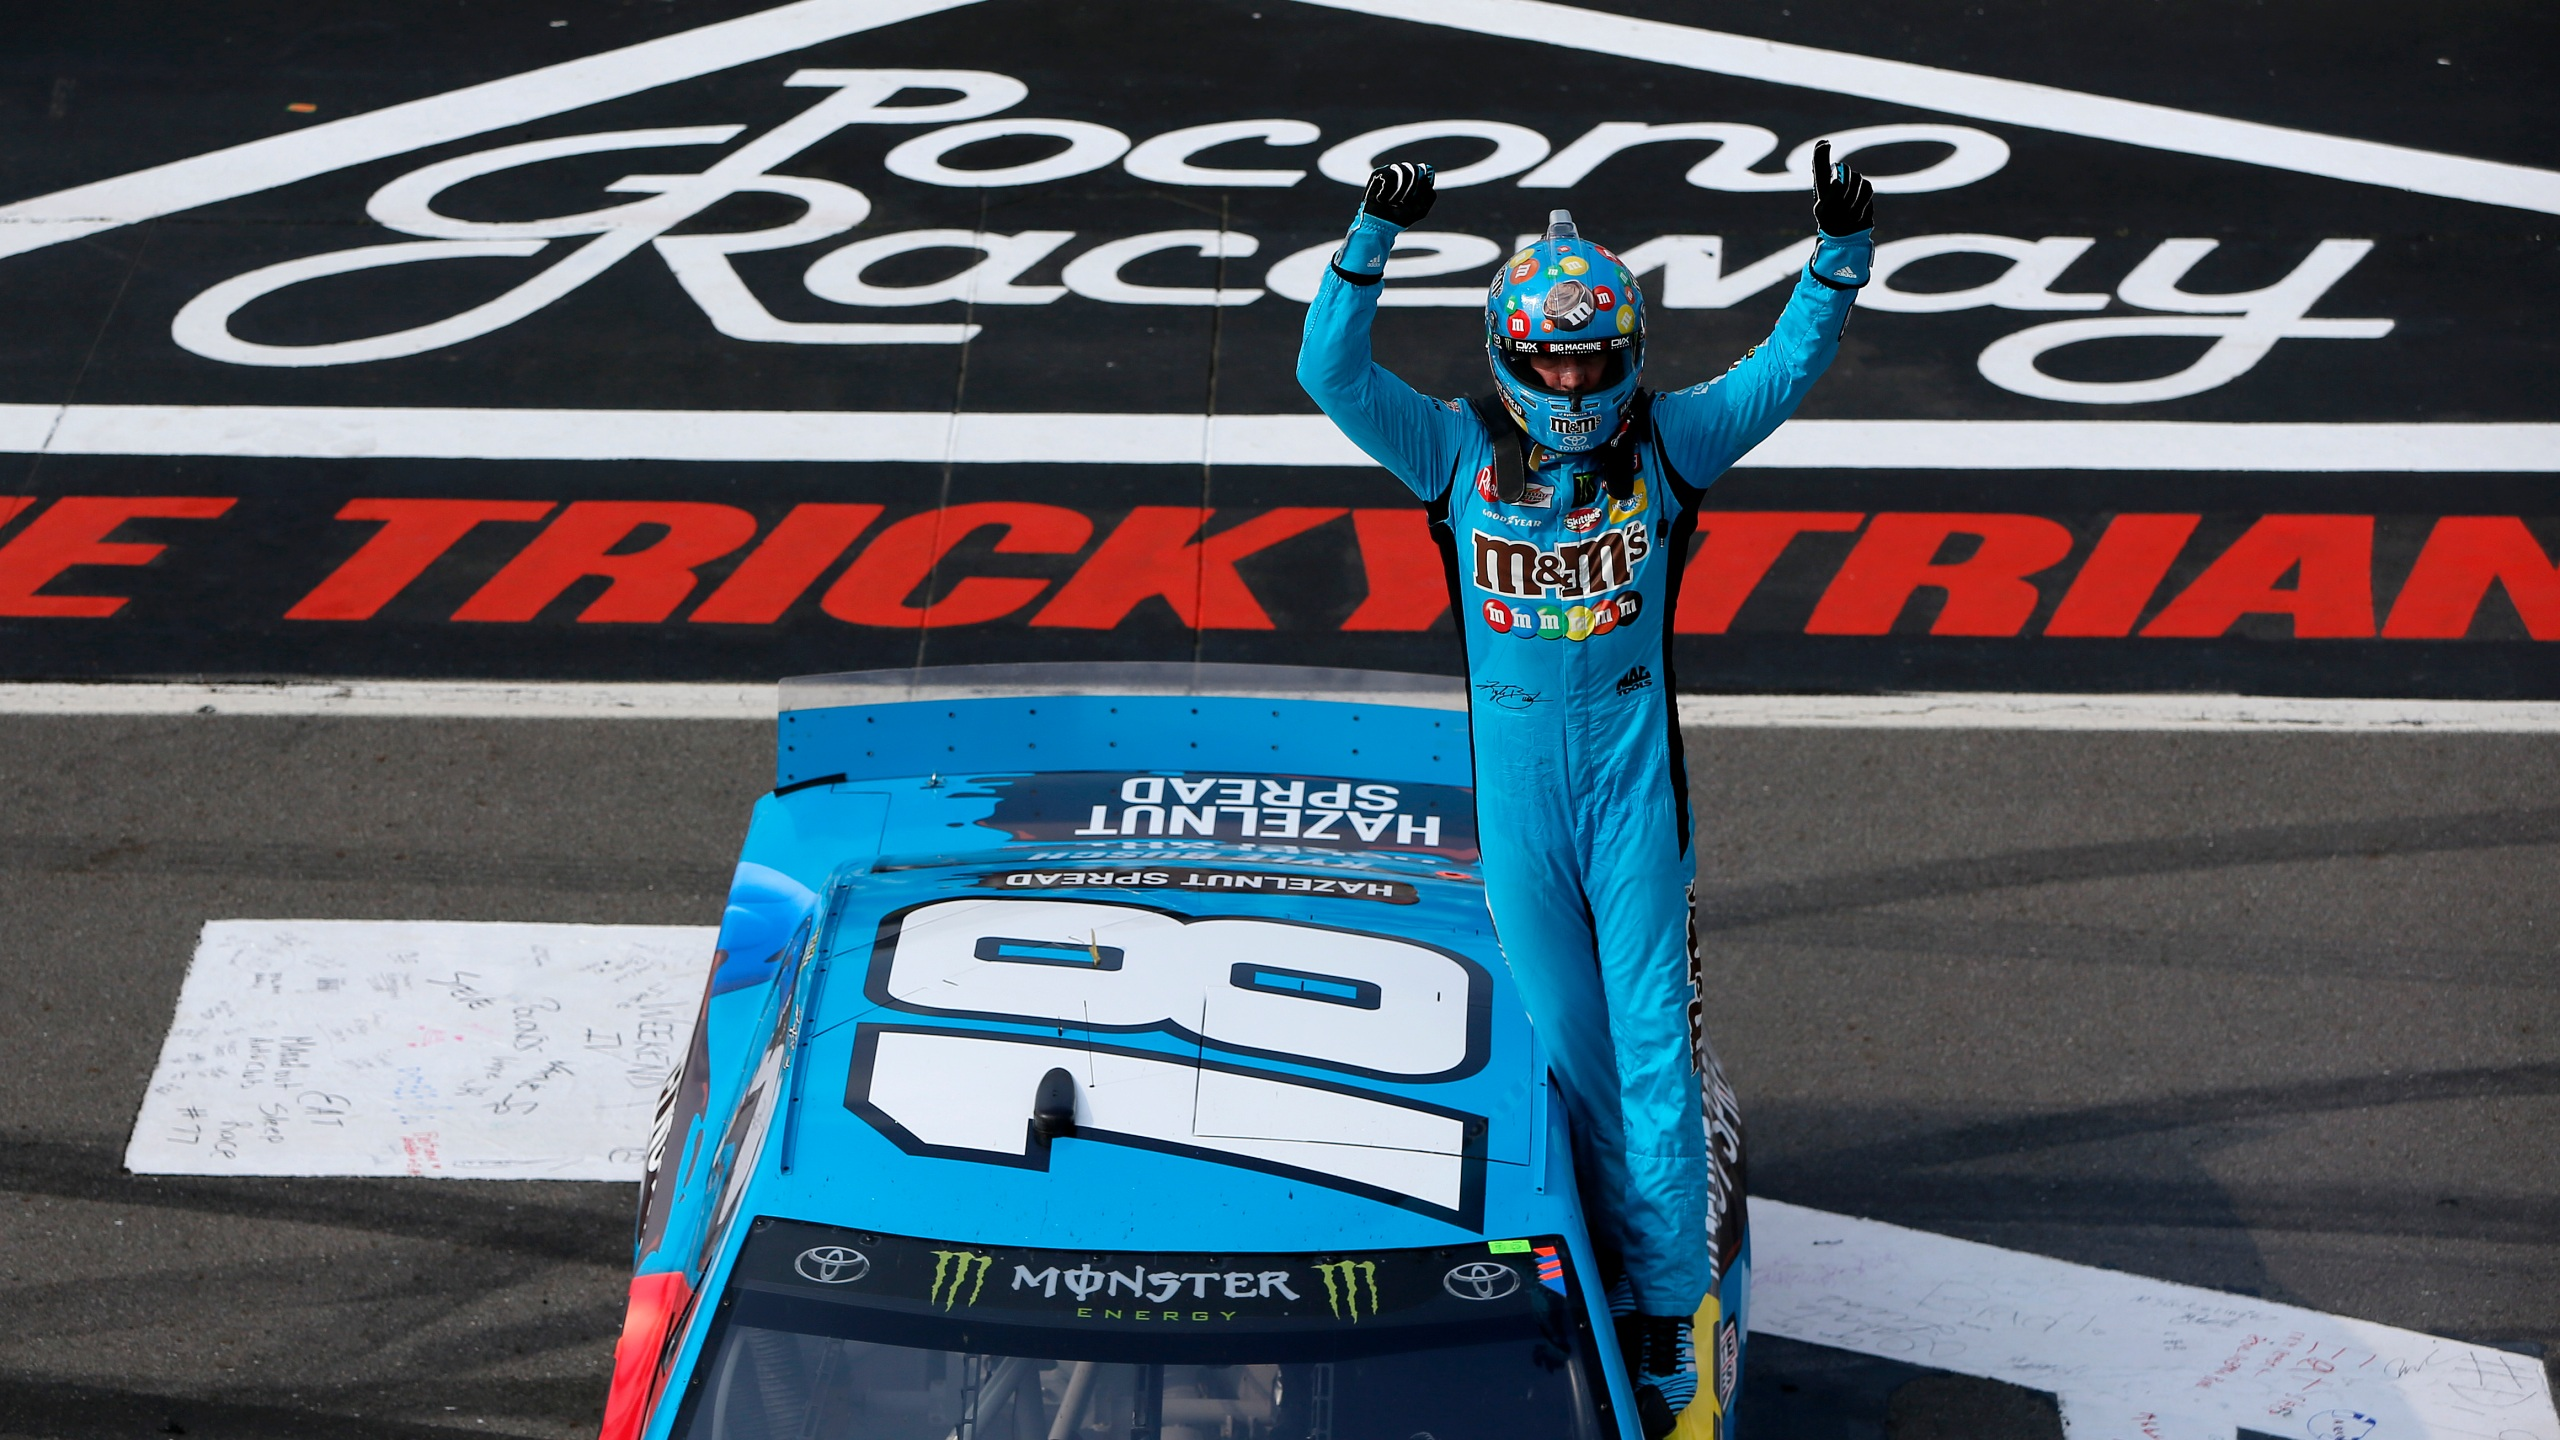 Kyle Busch takes Pocono for 4th Cup win